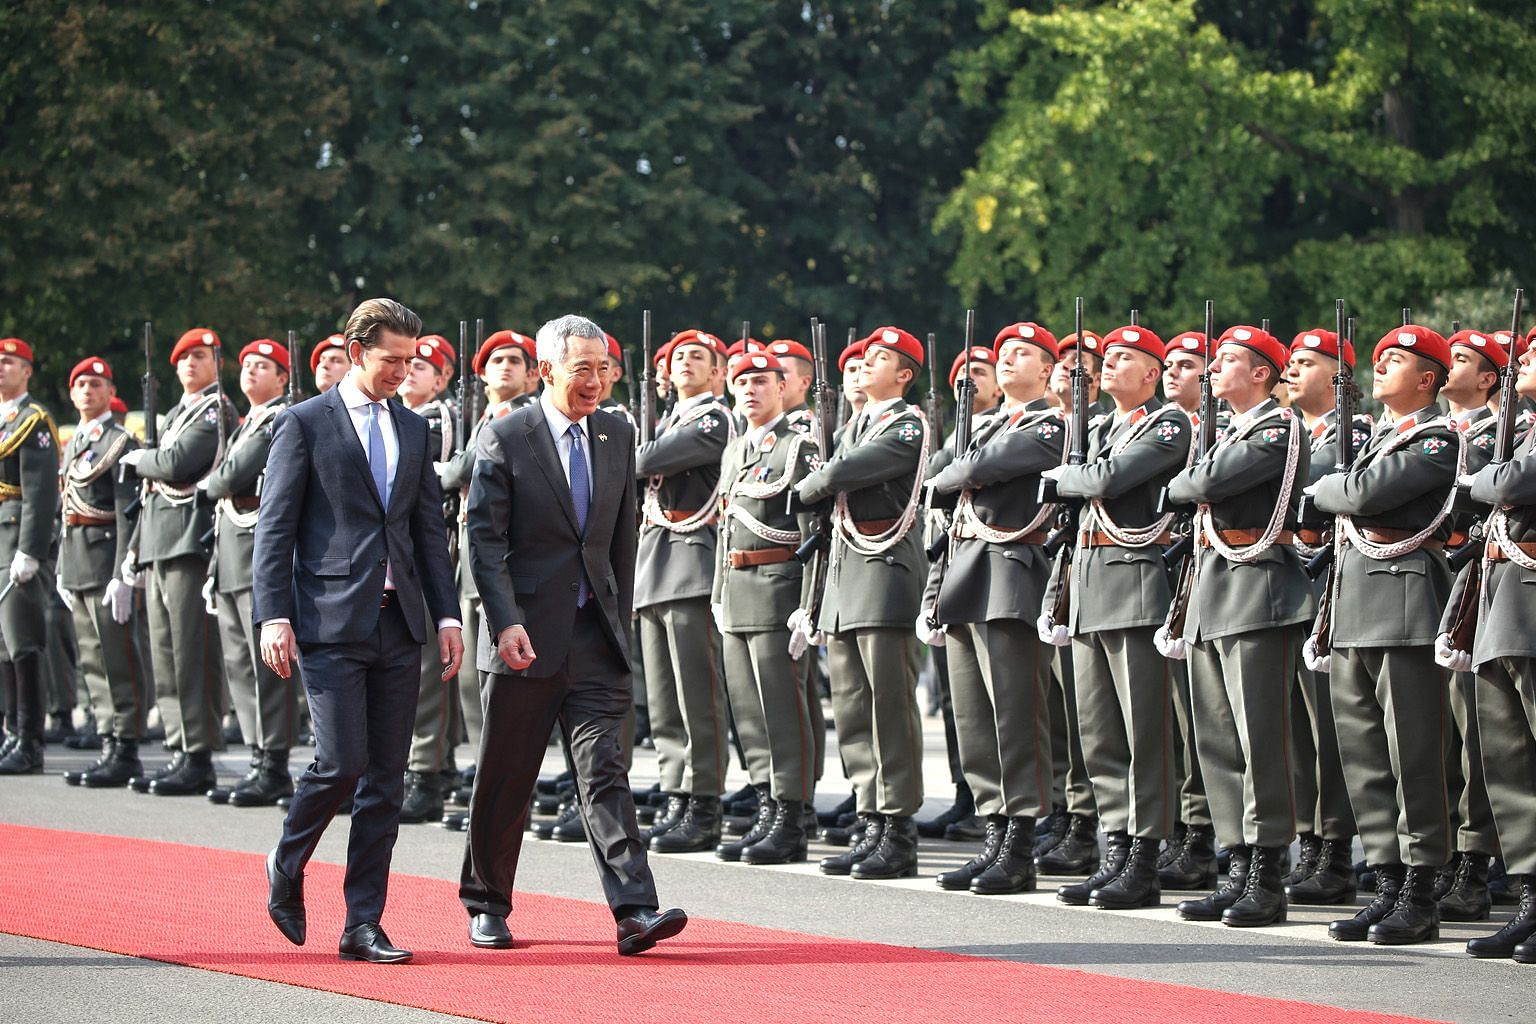 Austrian Chancellor Sebastian Kurz accompanying Prime Minister Lee Hsien Loong as he is welcomed by a military honour guard at the Federal Chancellery in Vienna yesterday. Both countries inked a pact to step up cooperation in digitalisation and infor